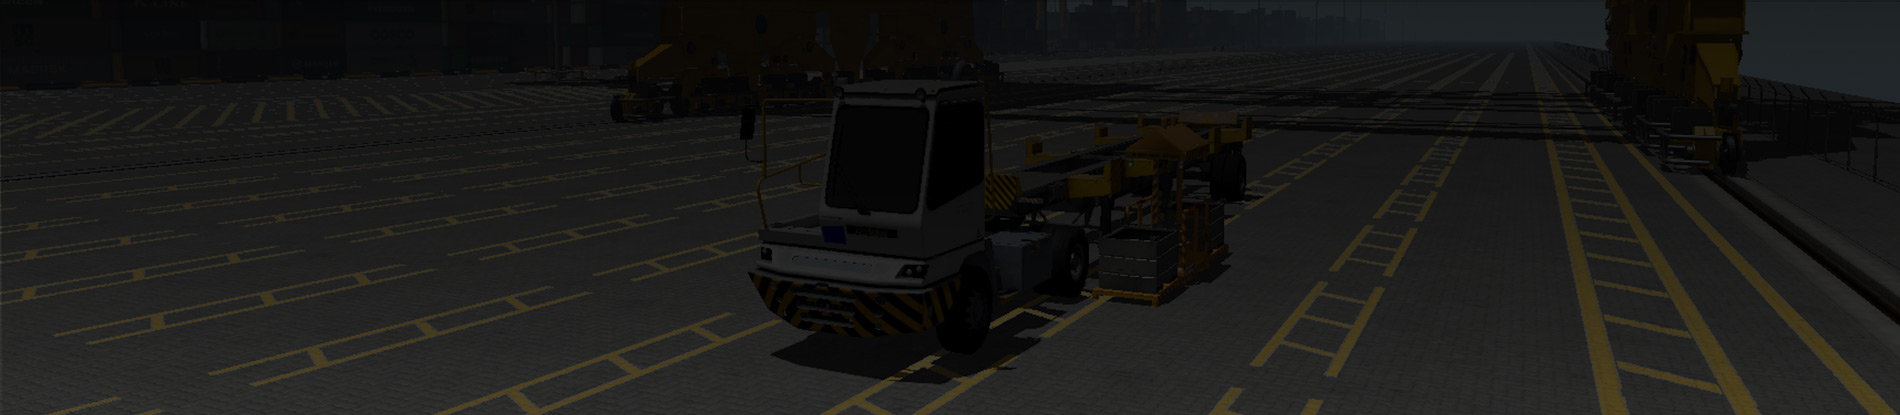 CM labs – Internal Transfer Vehicle Simulator